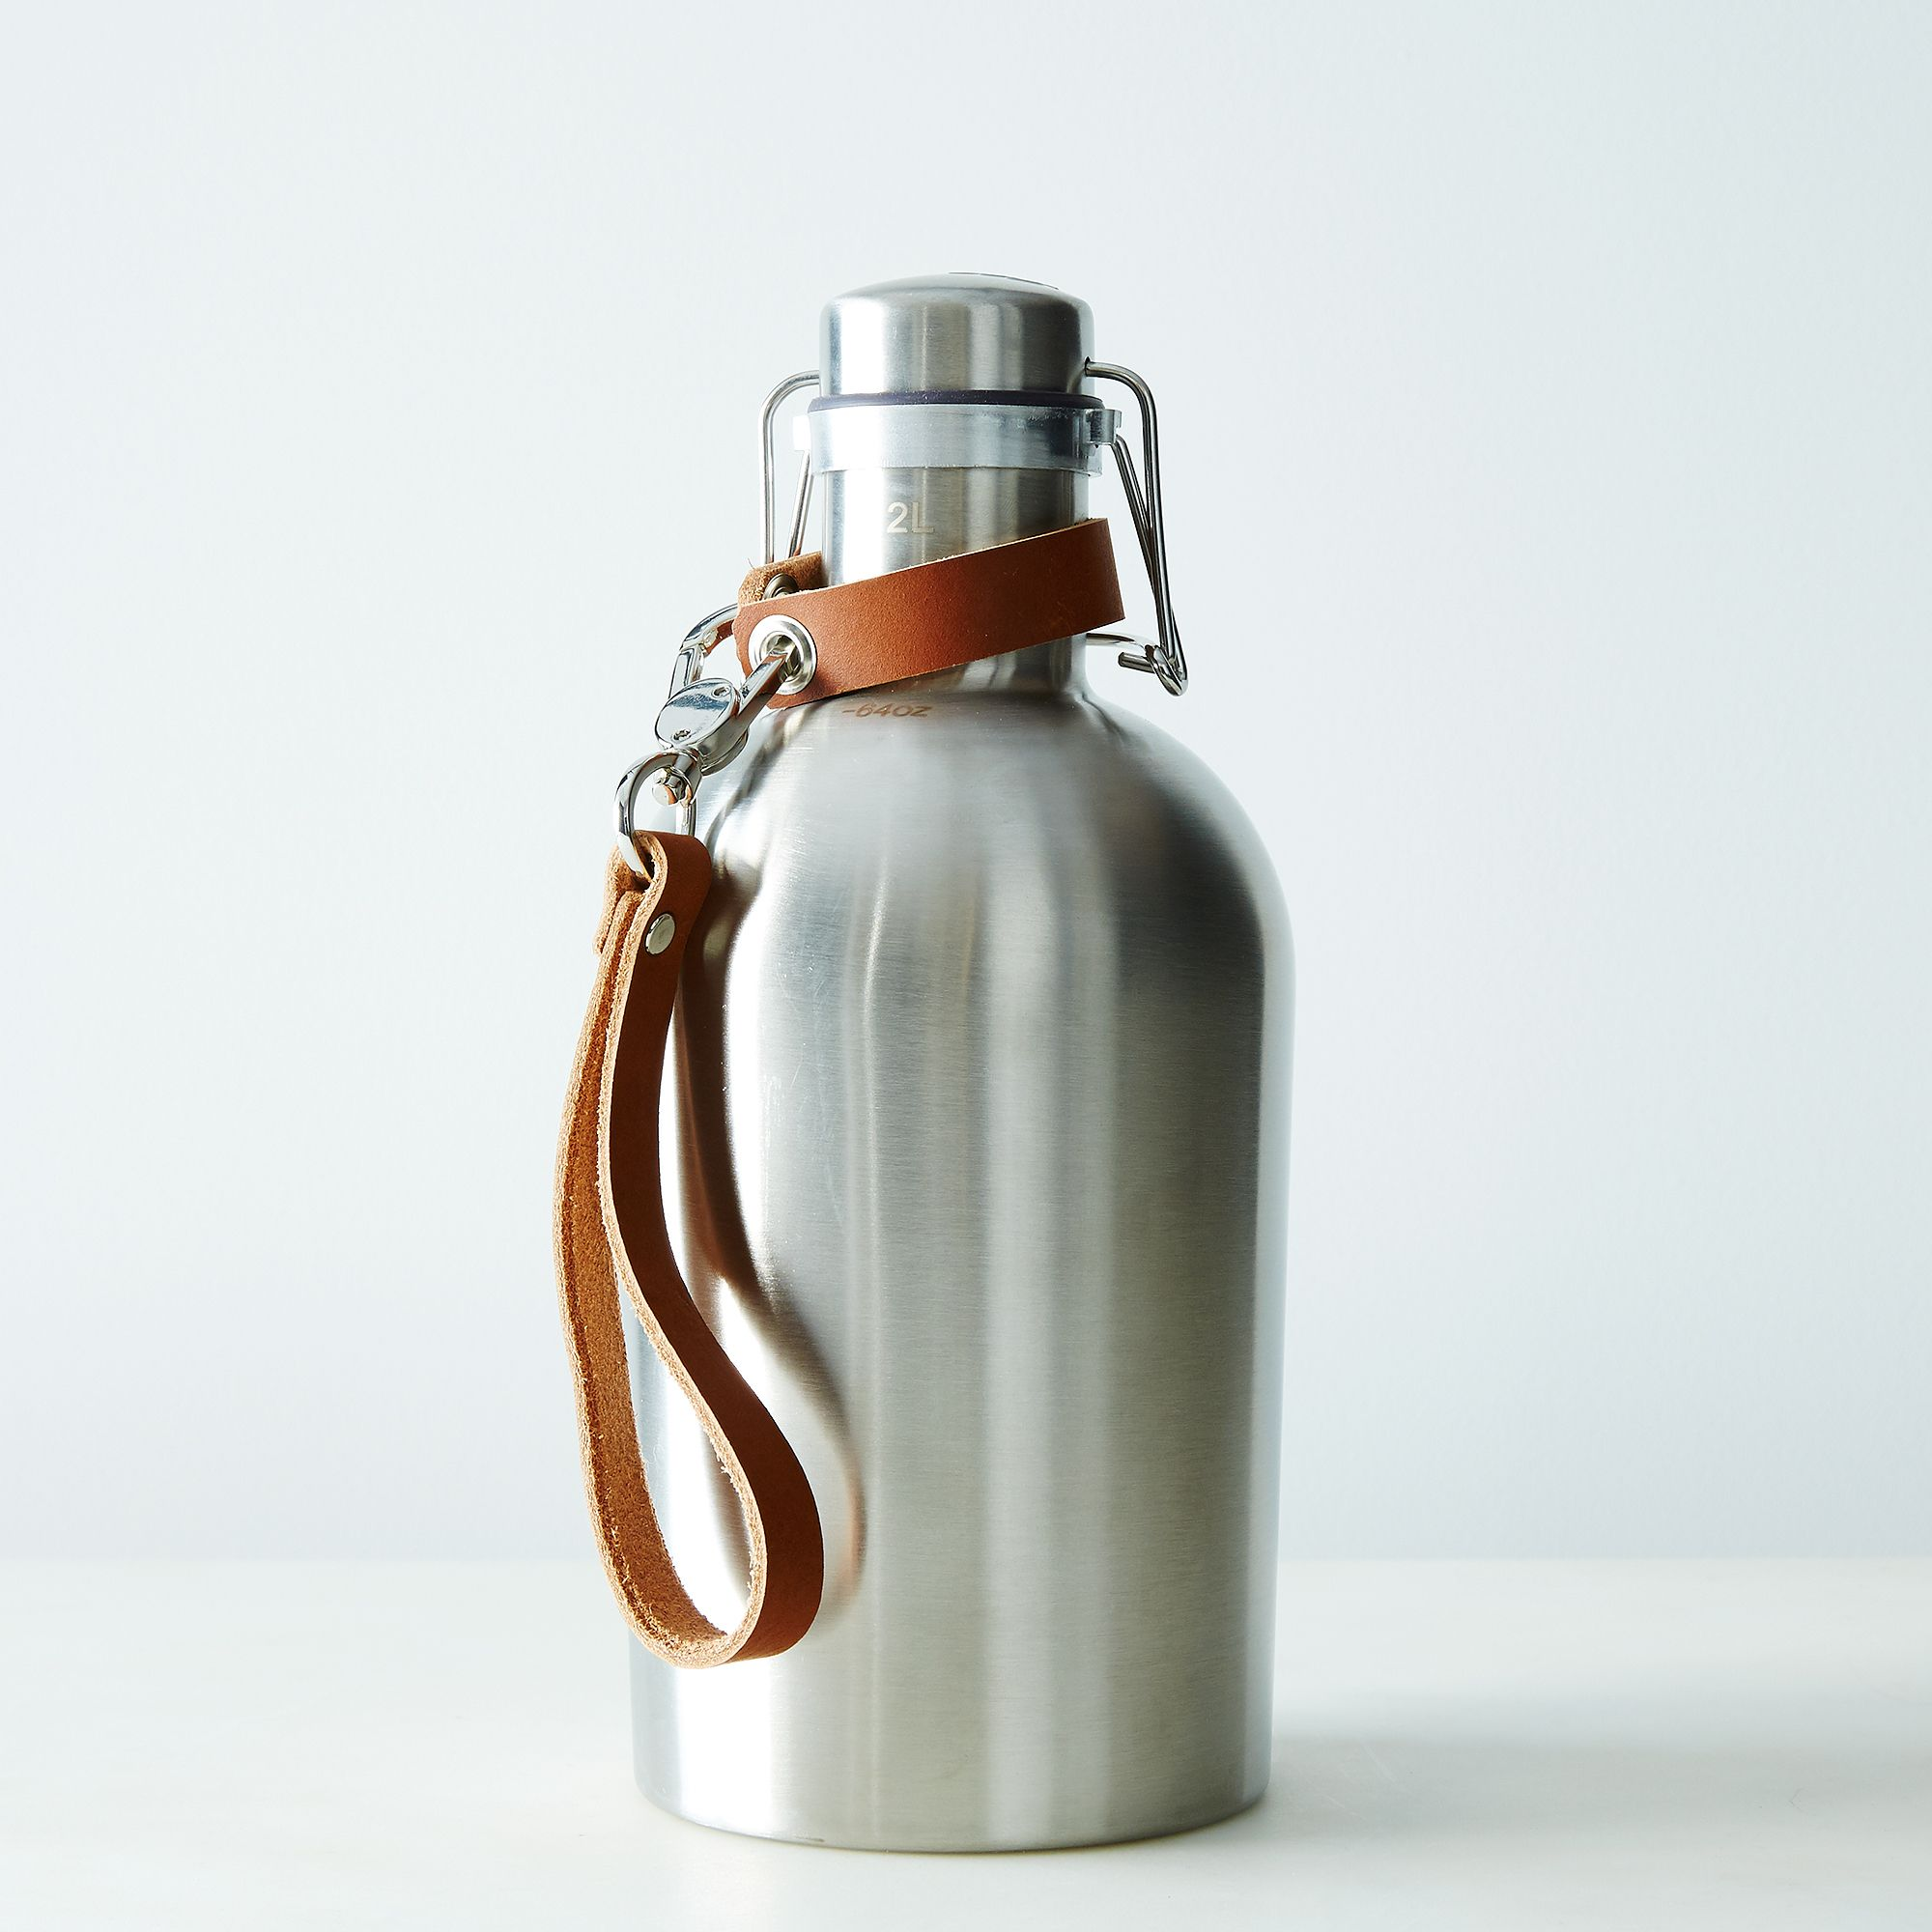 7562d605 120c 4d43 89fa d1d14eeec01f  2015 0316 pedal happy stainless steel growler with strap handle light brown silo 014